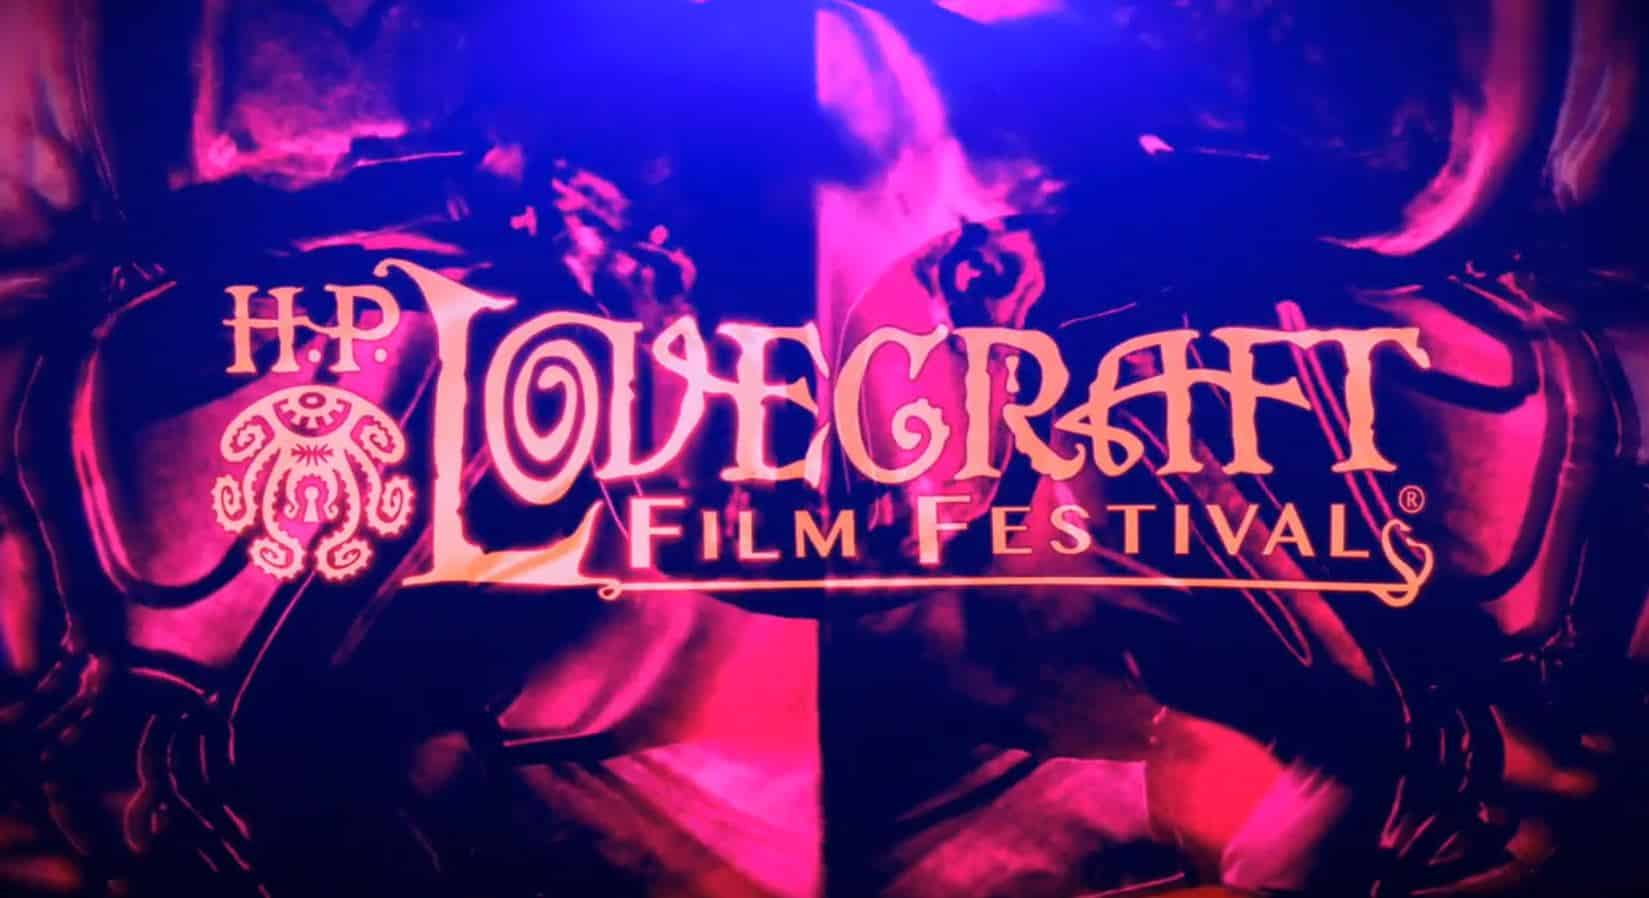 The H.P. Lovecraft Film Festival 2020 Press Announcement